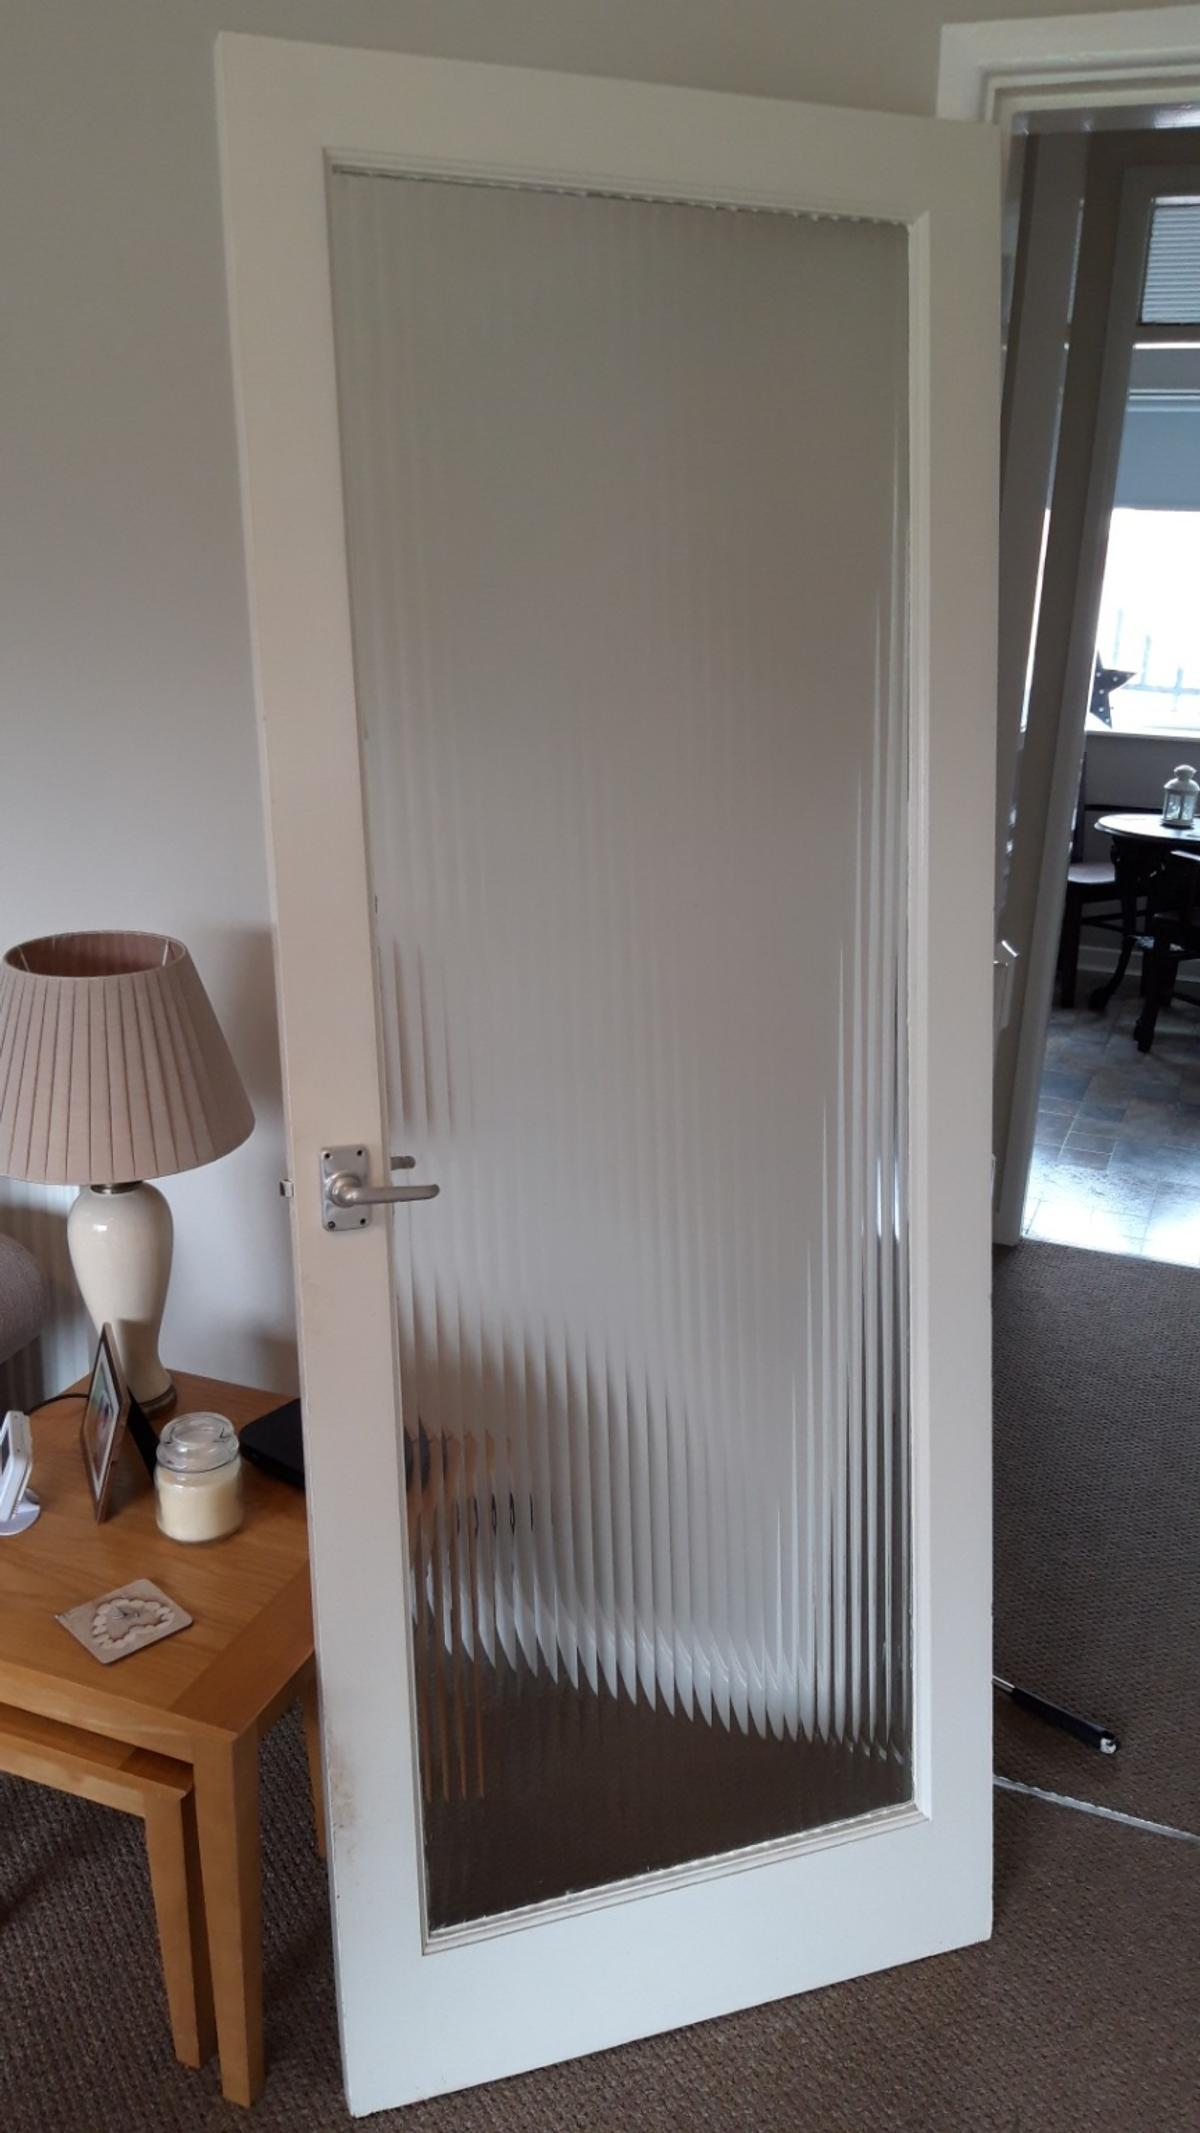 Bon 2 Reeded Glass Doors Free In B62 Dudley For Free For Sale ...